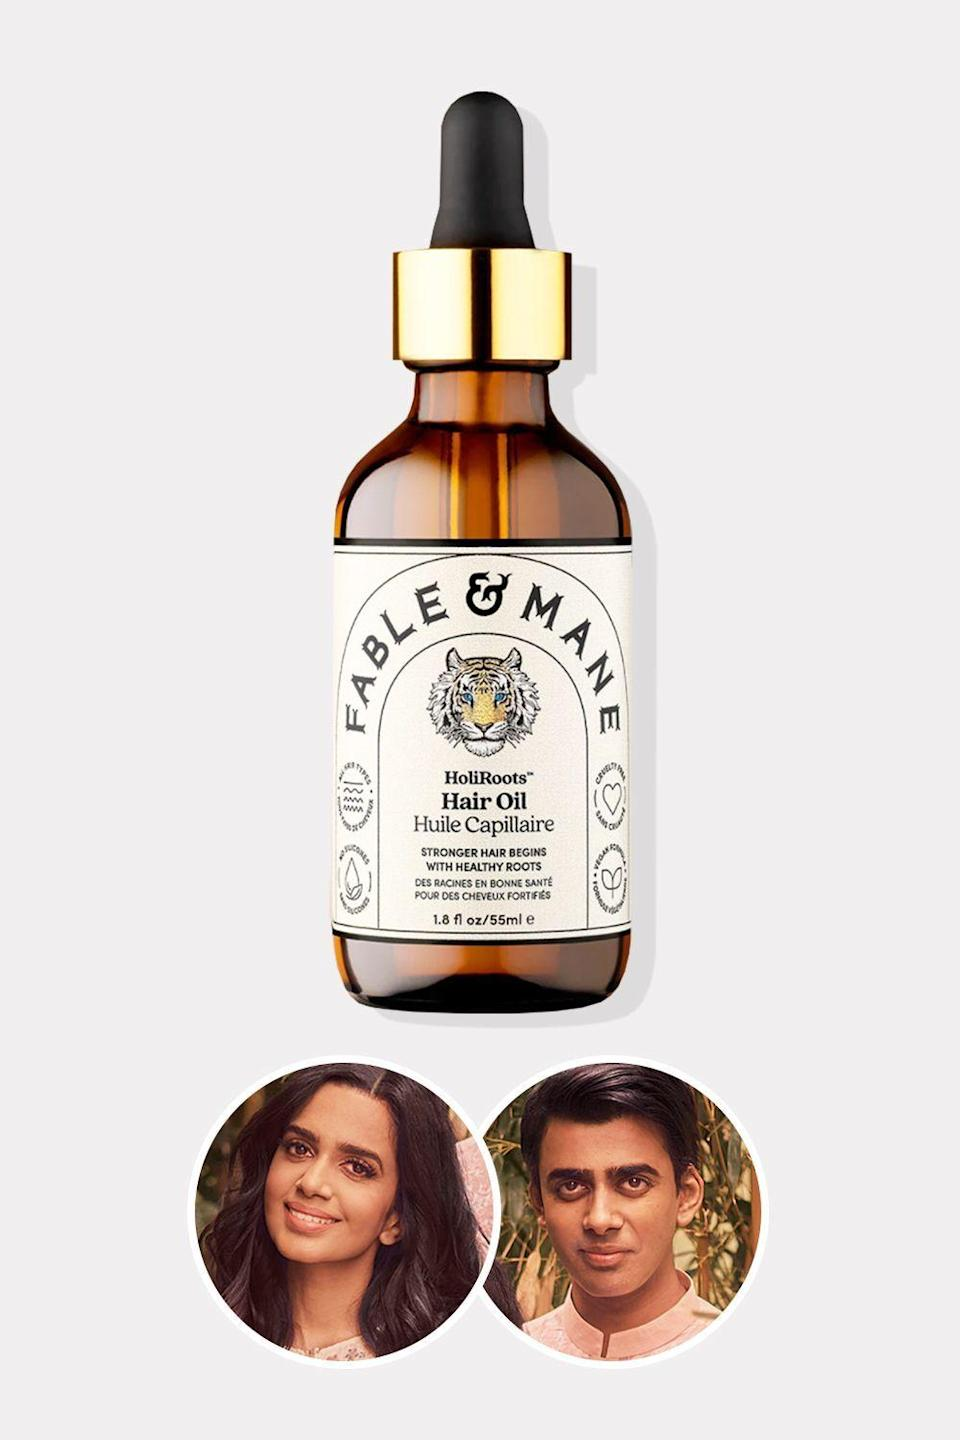 """<p><strong>Fable & Mane</strong></p><p>fableandmane.com</p><p><strong>£29.00</strong></p><p><a href=""""https://fableandmane.com/shop/holiroots-hair-oil/"""" rel=""""nofollow noopener"""" target=""""_blank"""" data-ylk=""""slk:Shop Now"""" class=""""link rapid-noclick-resp"""">Shop Now</a></p><p>Fable & Mane is a love letter to the Indian tradition of hair oiling. Co-founder Nikita Mehta remembers her grandmother massaging her hair with a mixture of healing plant oils to increase its shine and strength. This product is a direct descendent of that ritual, with Ashwagandha, castor oil, and Dashmool, a combination of ten different plant extracts that nurture the scalp to increase the health of your strands.</p>"""